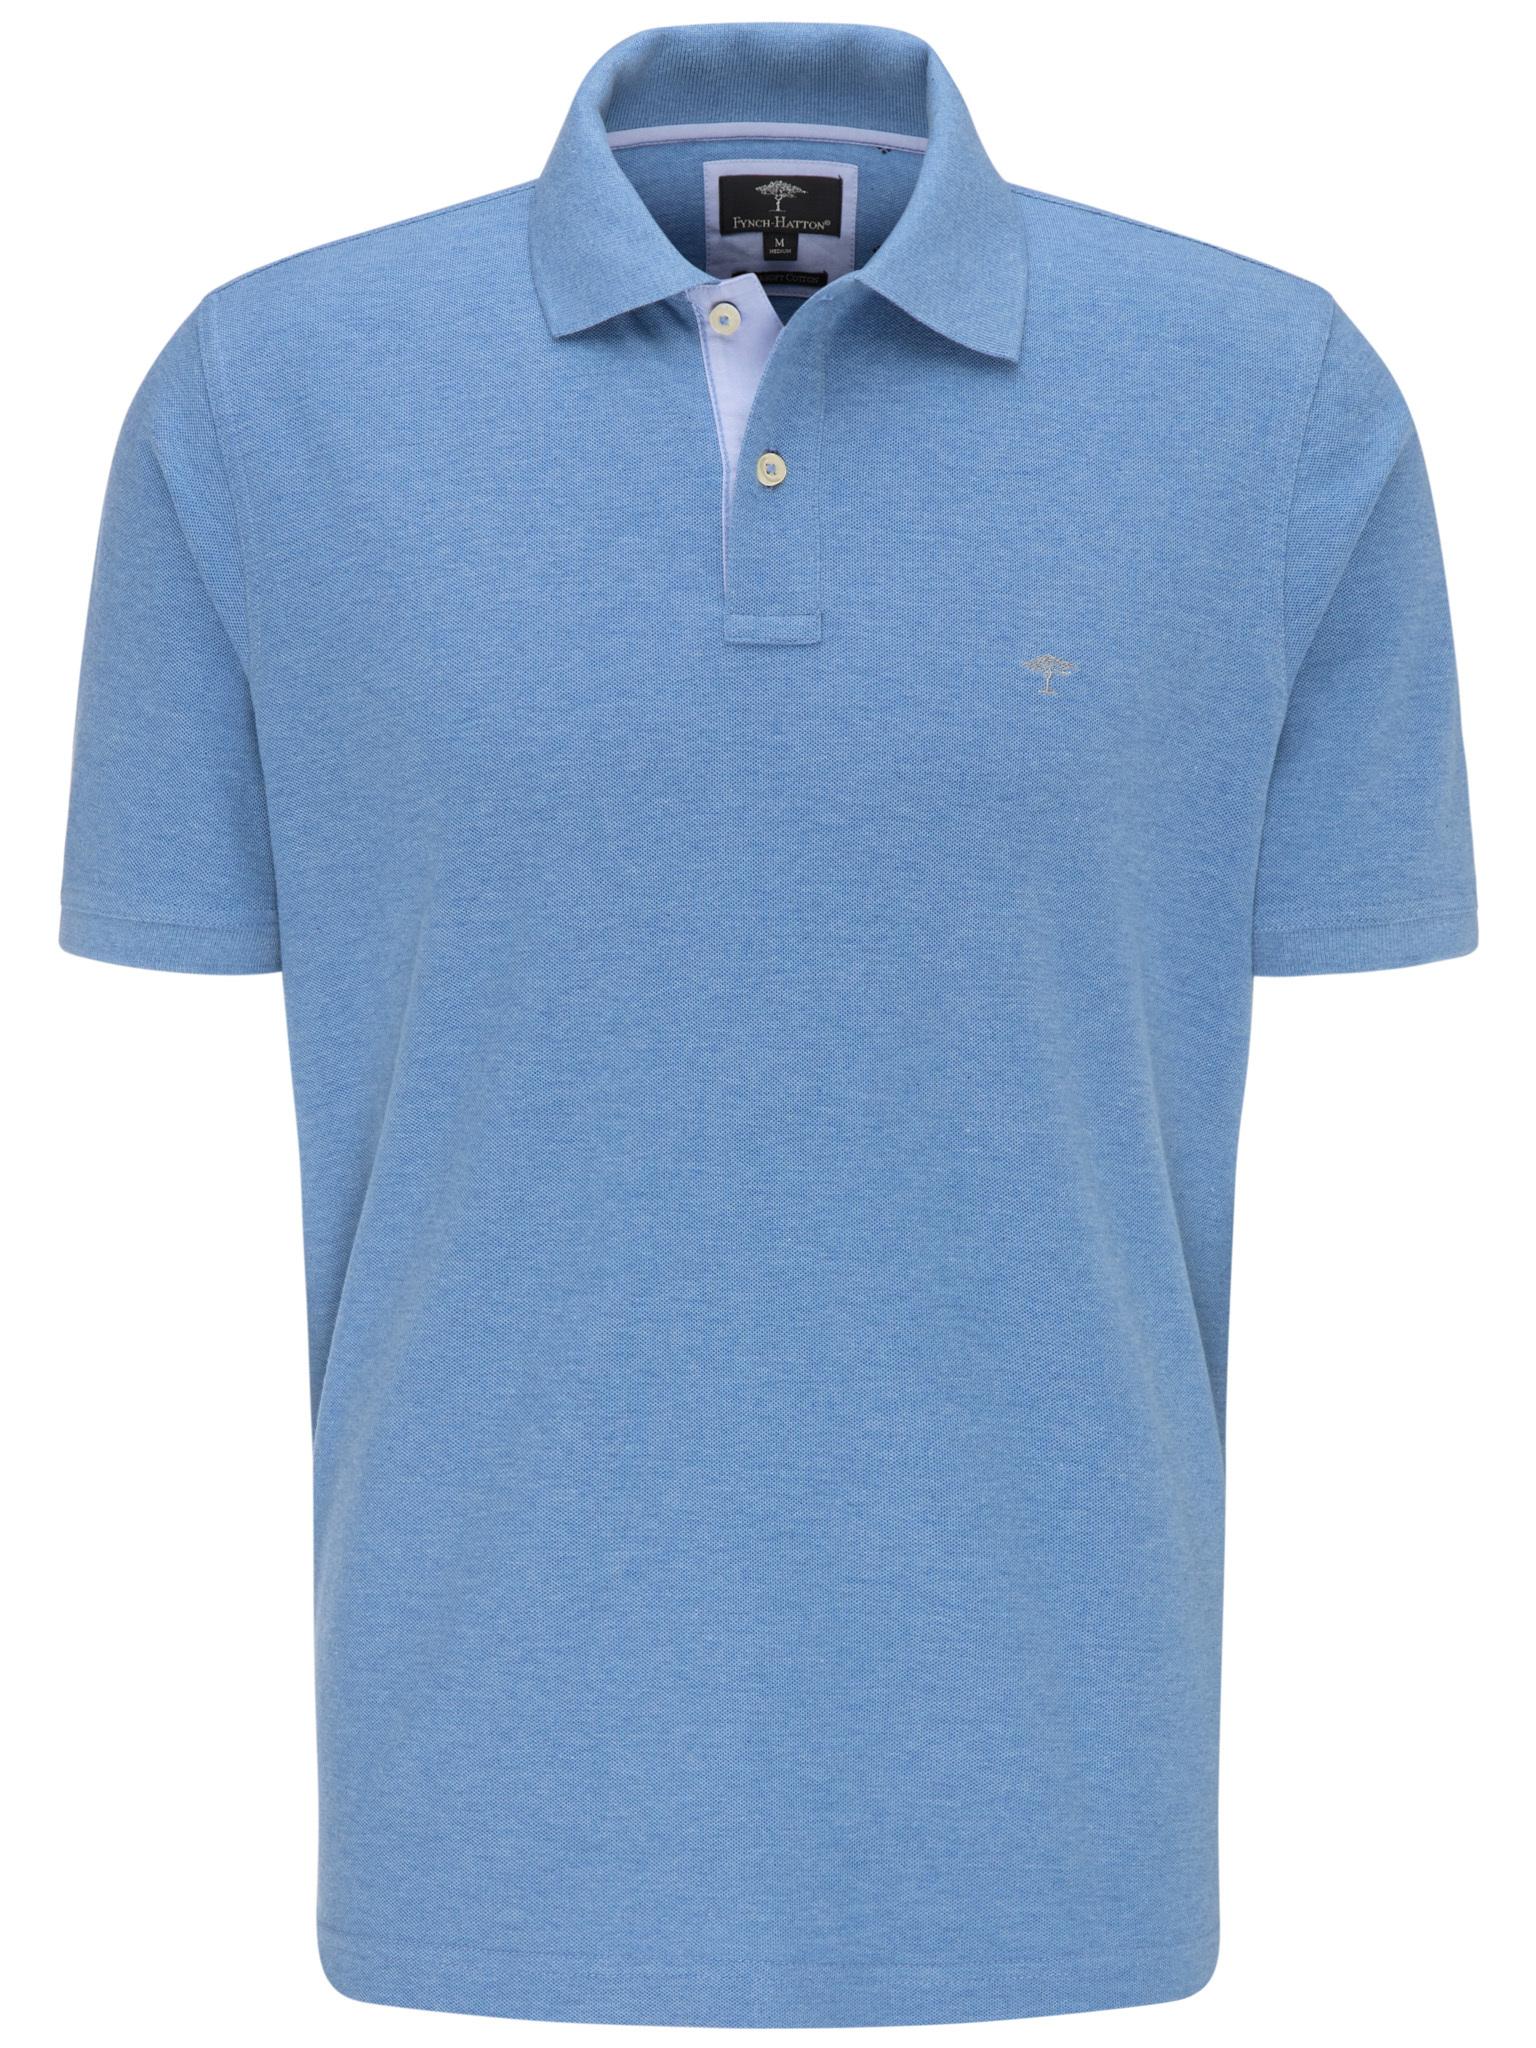 Fynch Hatton cotton polo in ligh blue